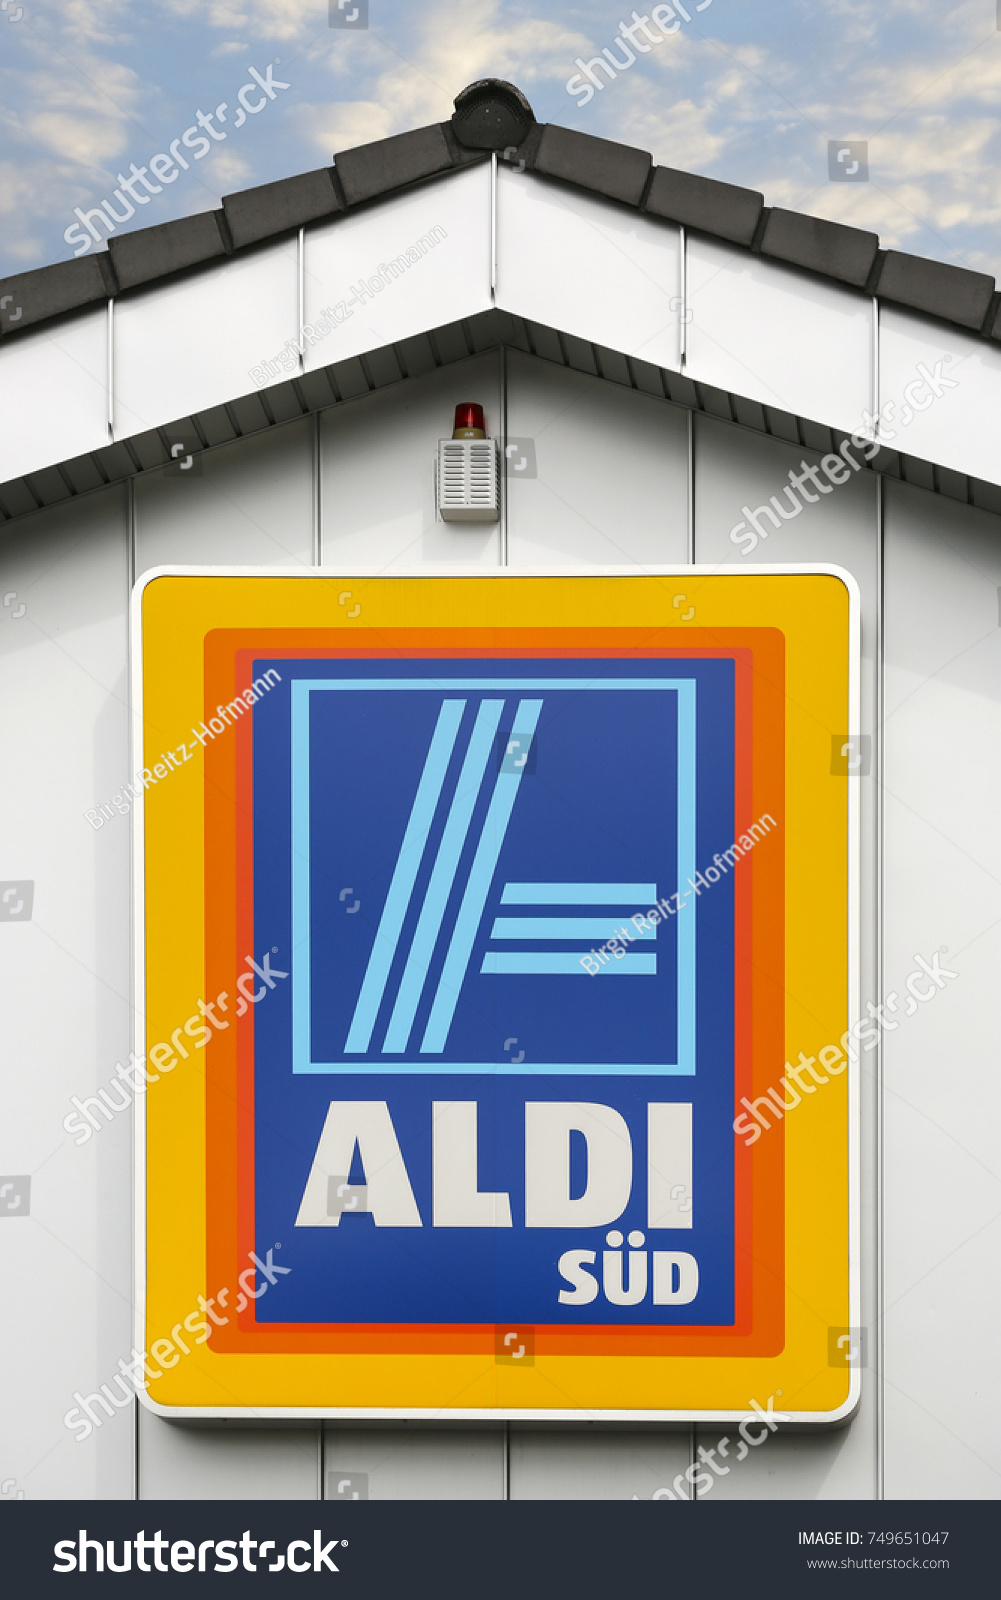 Linden germany july 2017 aldi southsupermarket stock photo linden germany july 2017 aldi southsupermarket chain sign aldi biocorpaavc